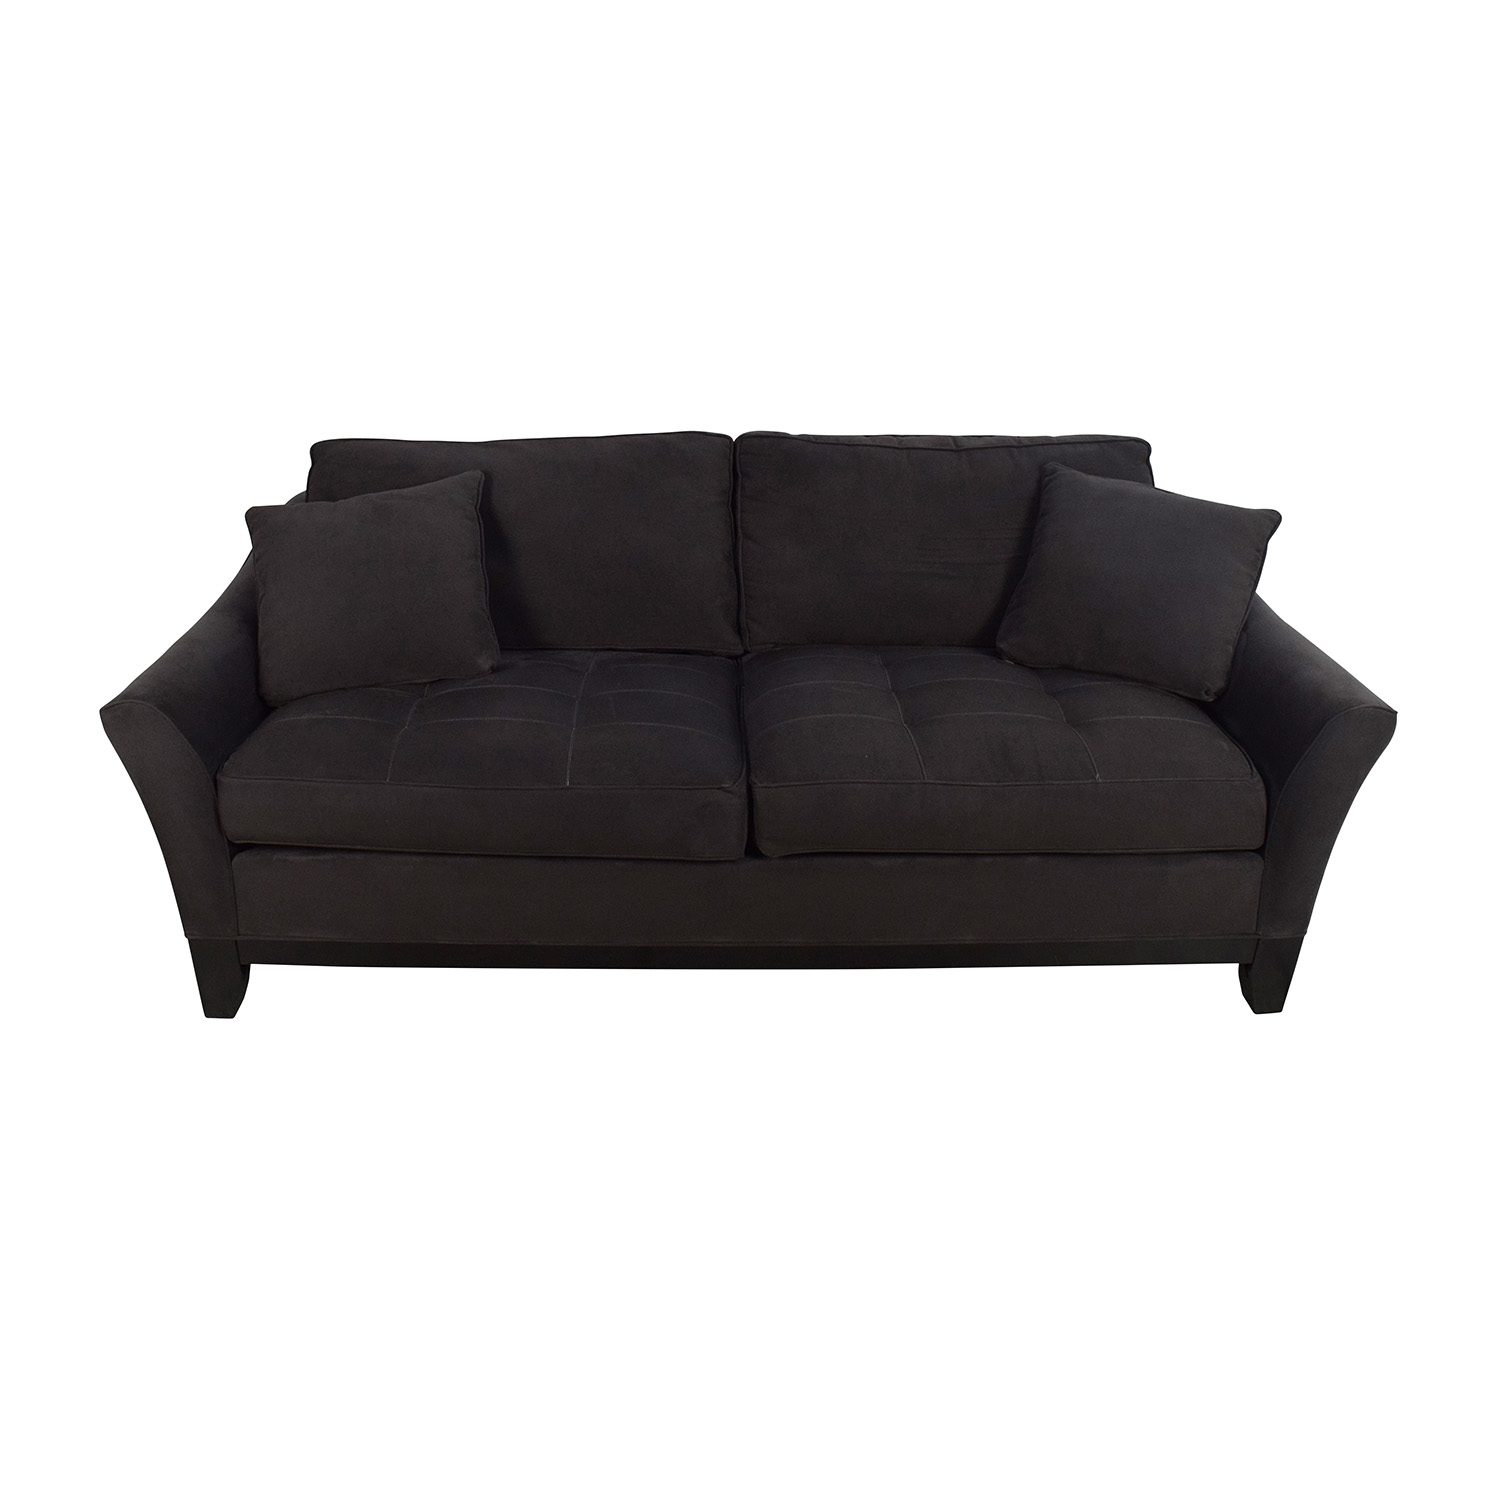 Raymour and Flanigan Raymour & Flanigan Gray Microfiber Sofa Gray